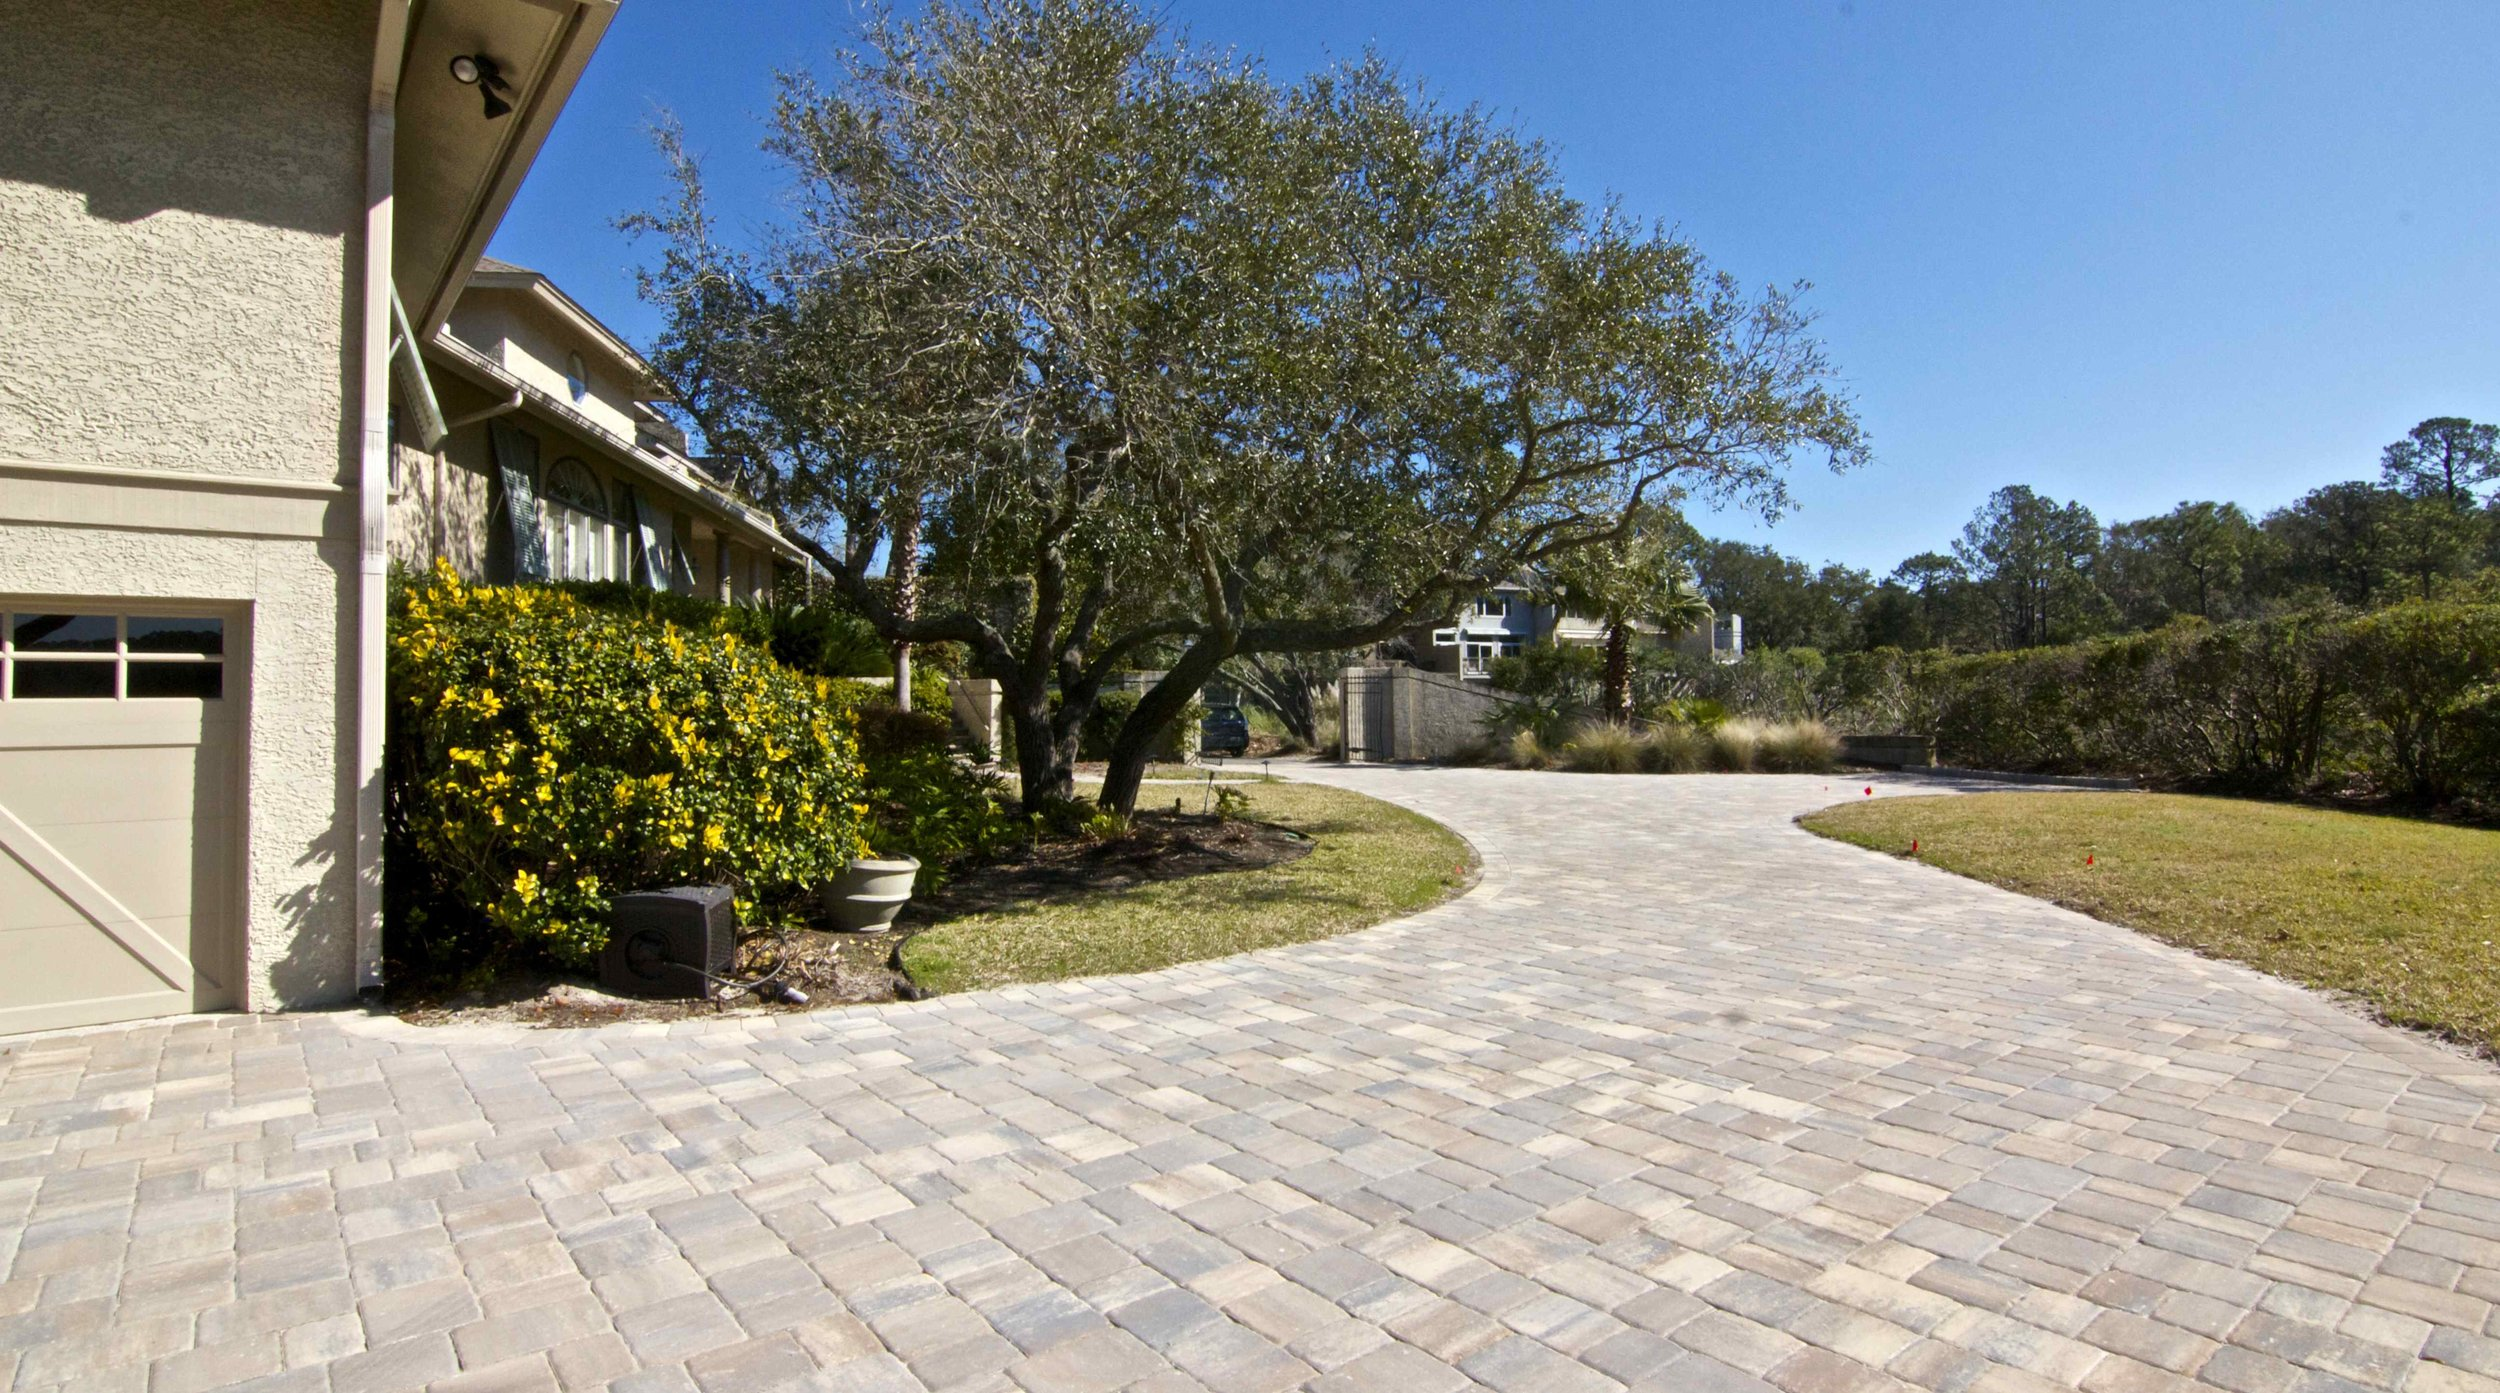 Completed Brick Paver Driveway